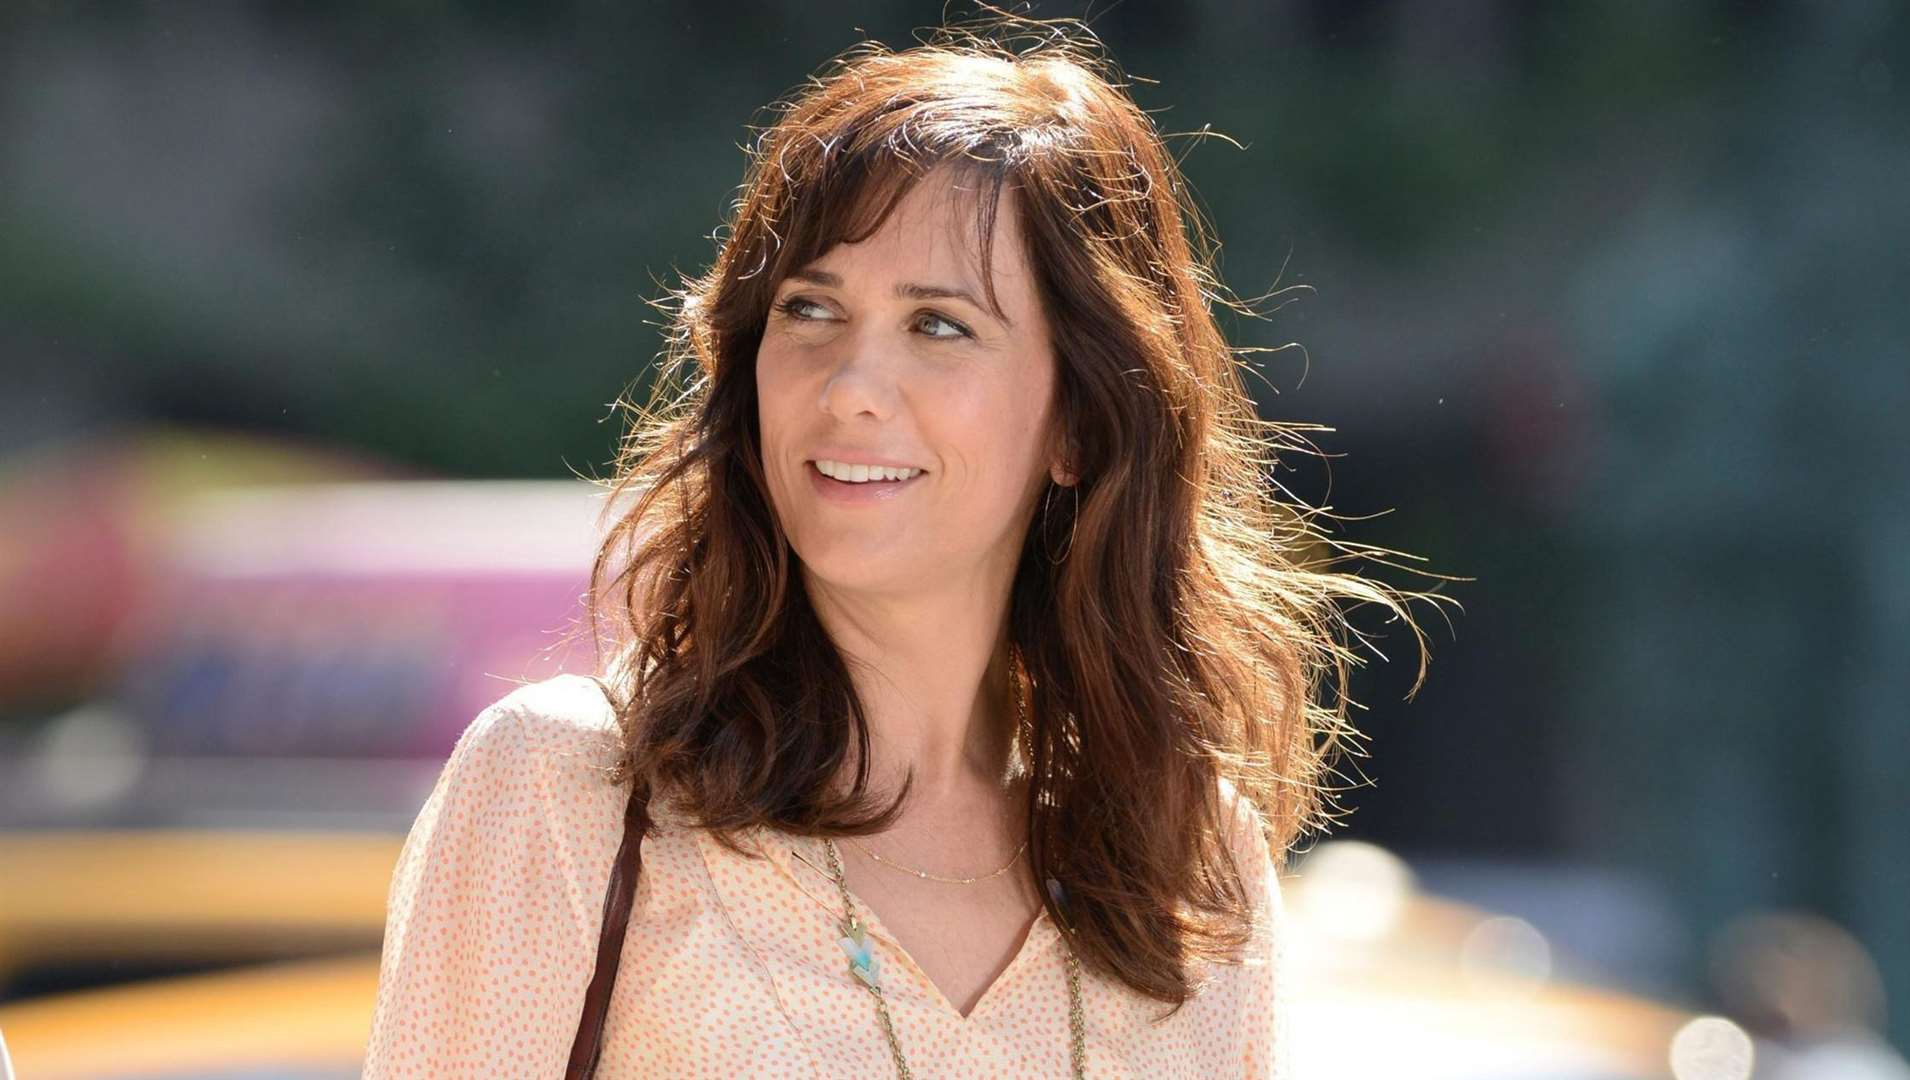 Kristen Wiig will be among the cast of the new Wonder Woman 1984 film